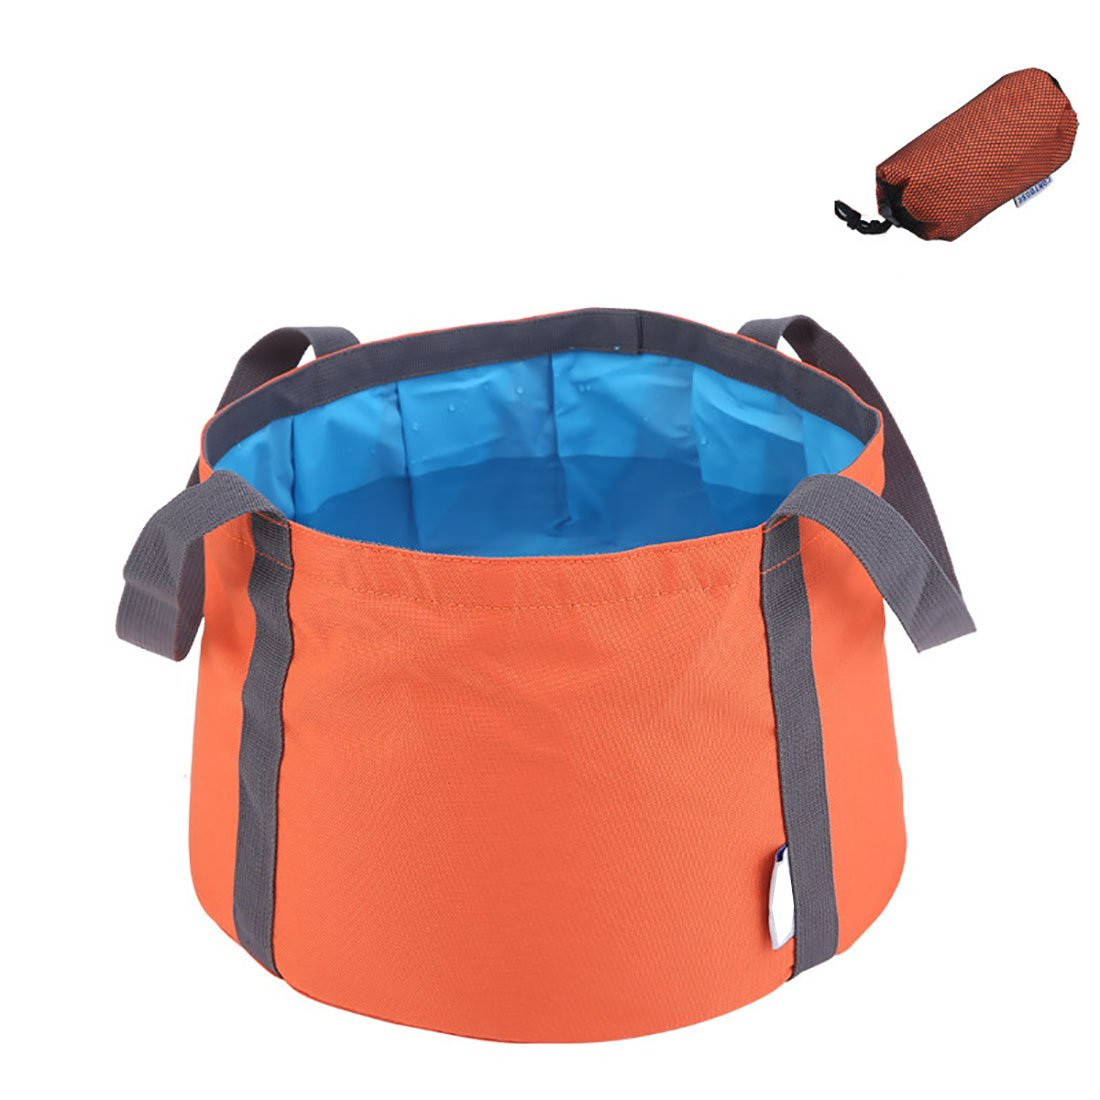 ALXDR Foldable Washbasin Outdoor Water Bucket For Camping Travel Multi-Purpose Water Storage Pure Color Motion Style Pail PEVA Waterproof, Larger Capacity, 10L,Orange